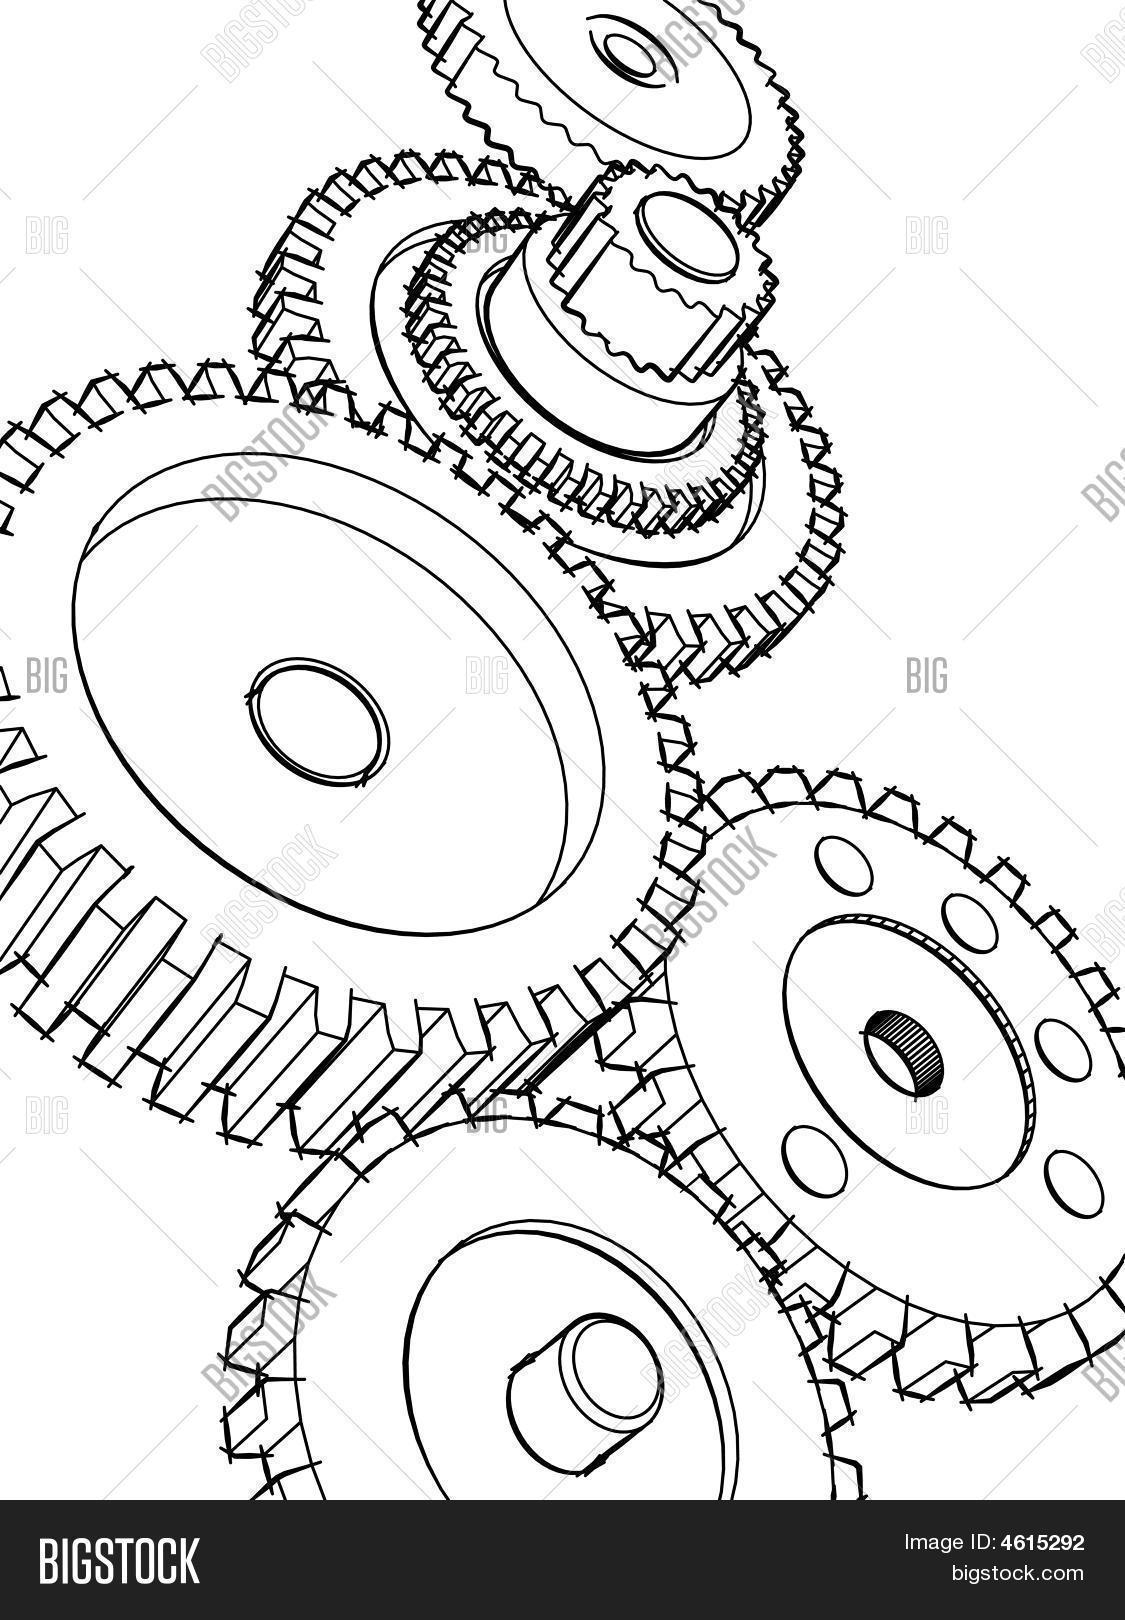 Gear Sketch Image Amp Photo Free Trial